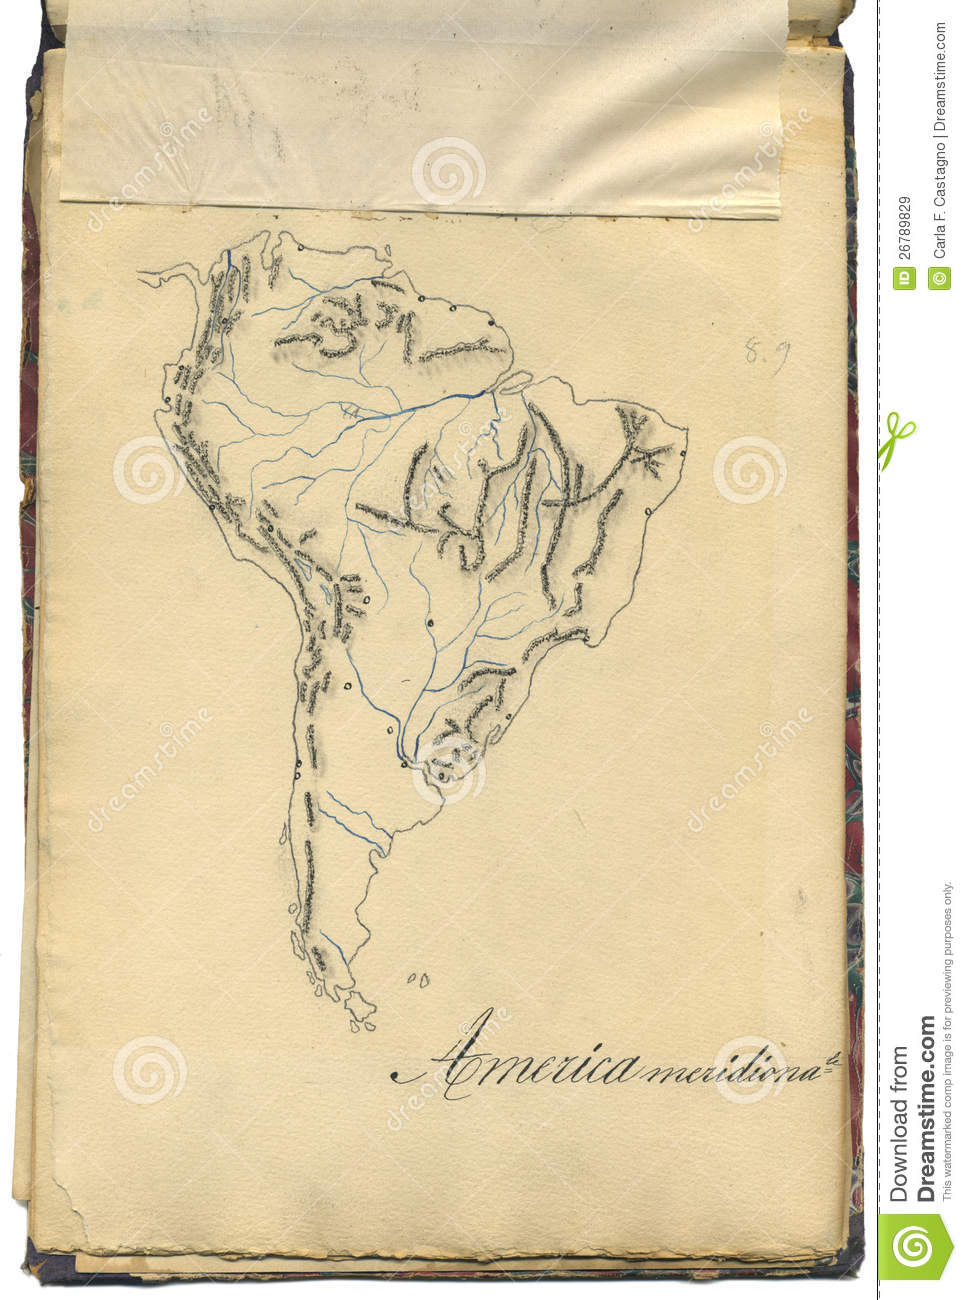 Original Vintage Map Of South America Stock Image - Image of guyana ...